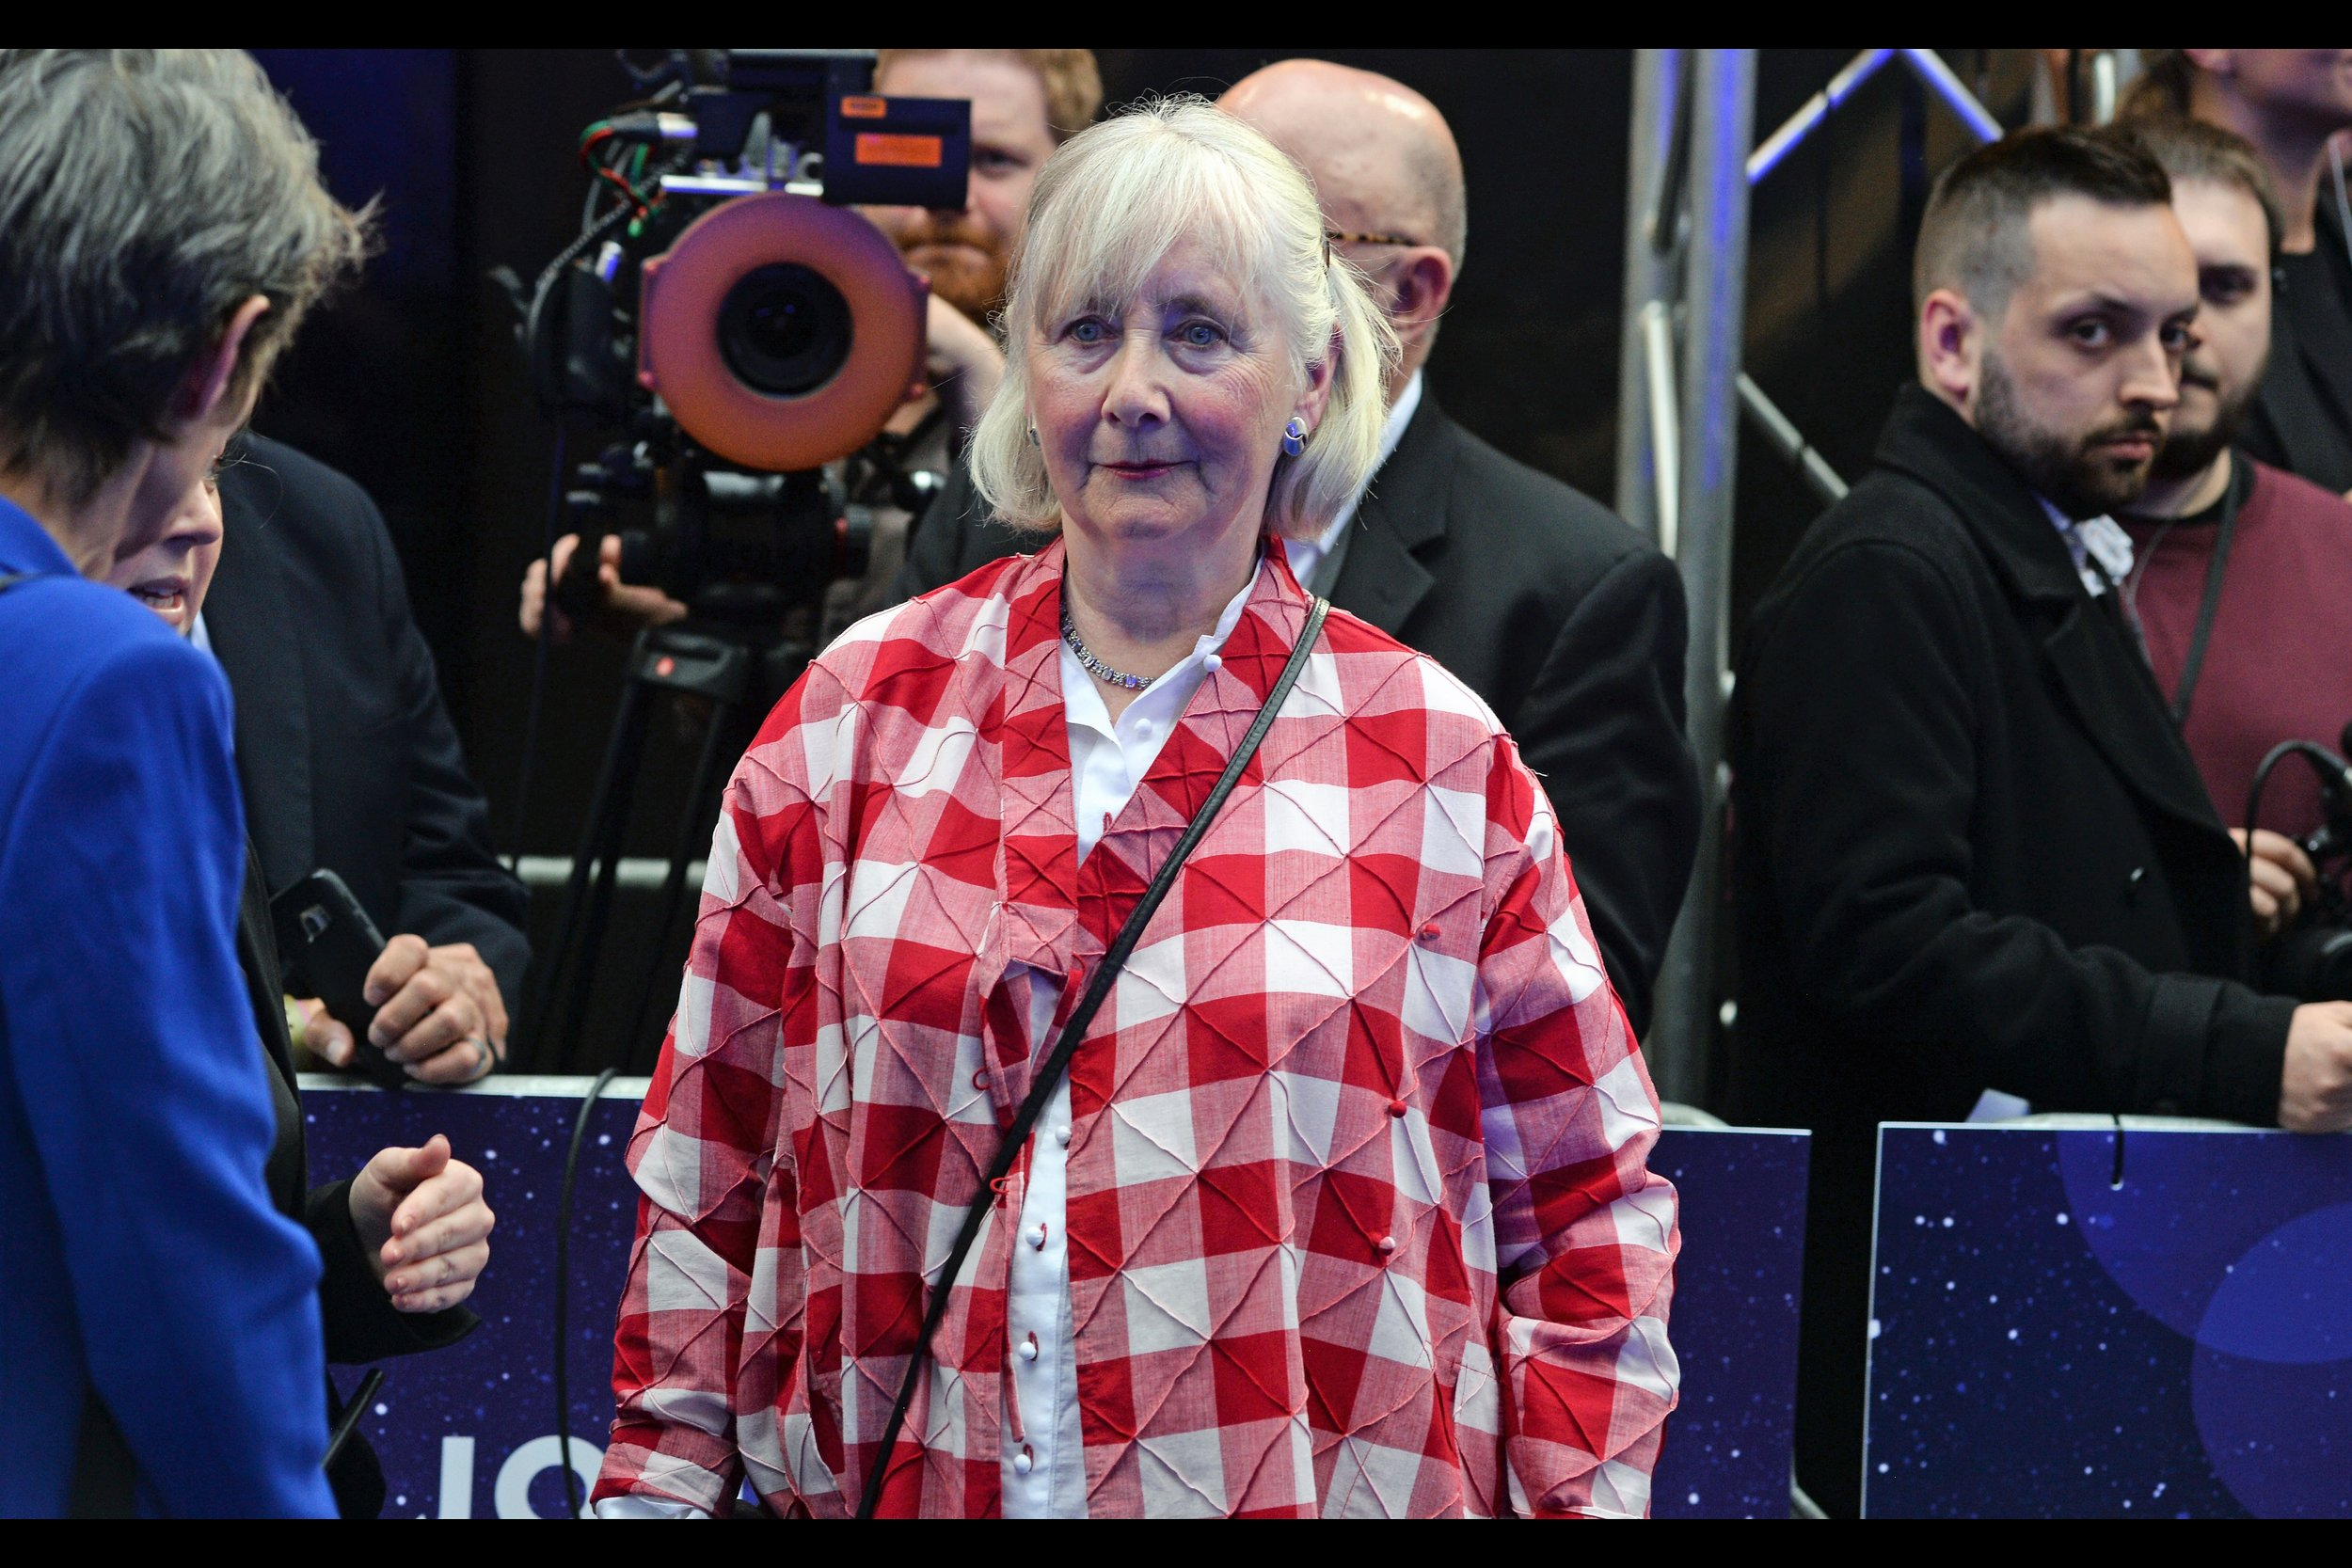 Gemma Jones' 100+ imdb credits include three Harry Potter films (2, 6 and 7b), and possibly a recent highly successful raid on a tablecloth factory.